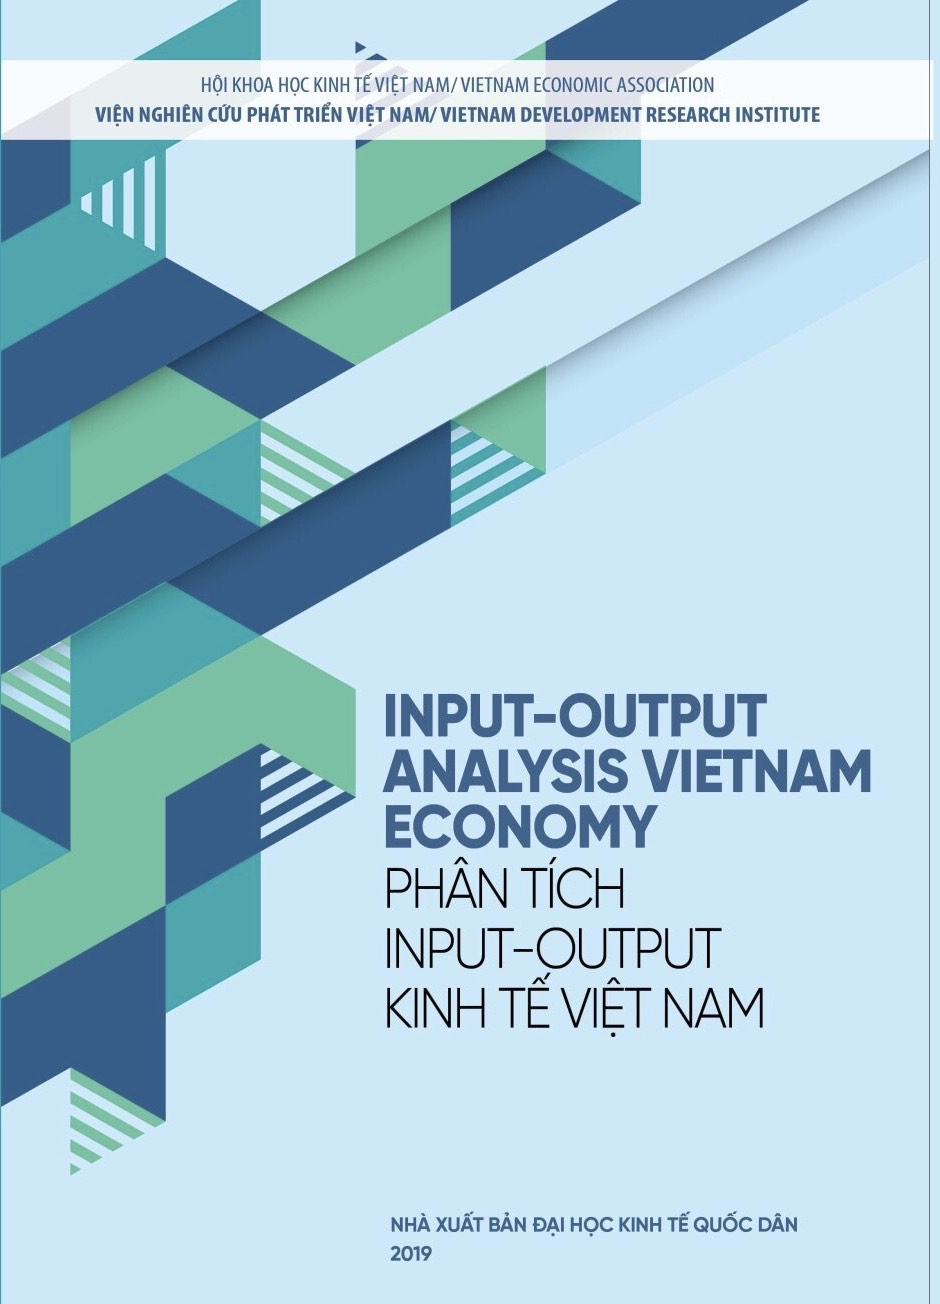 INPUT-OUTPUT ANALYSIS OF VIETNAM ECONOMY